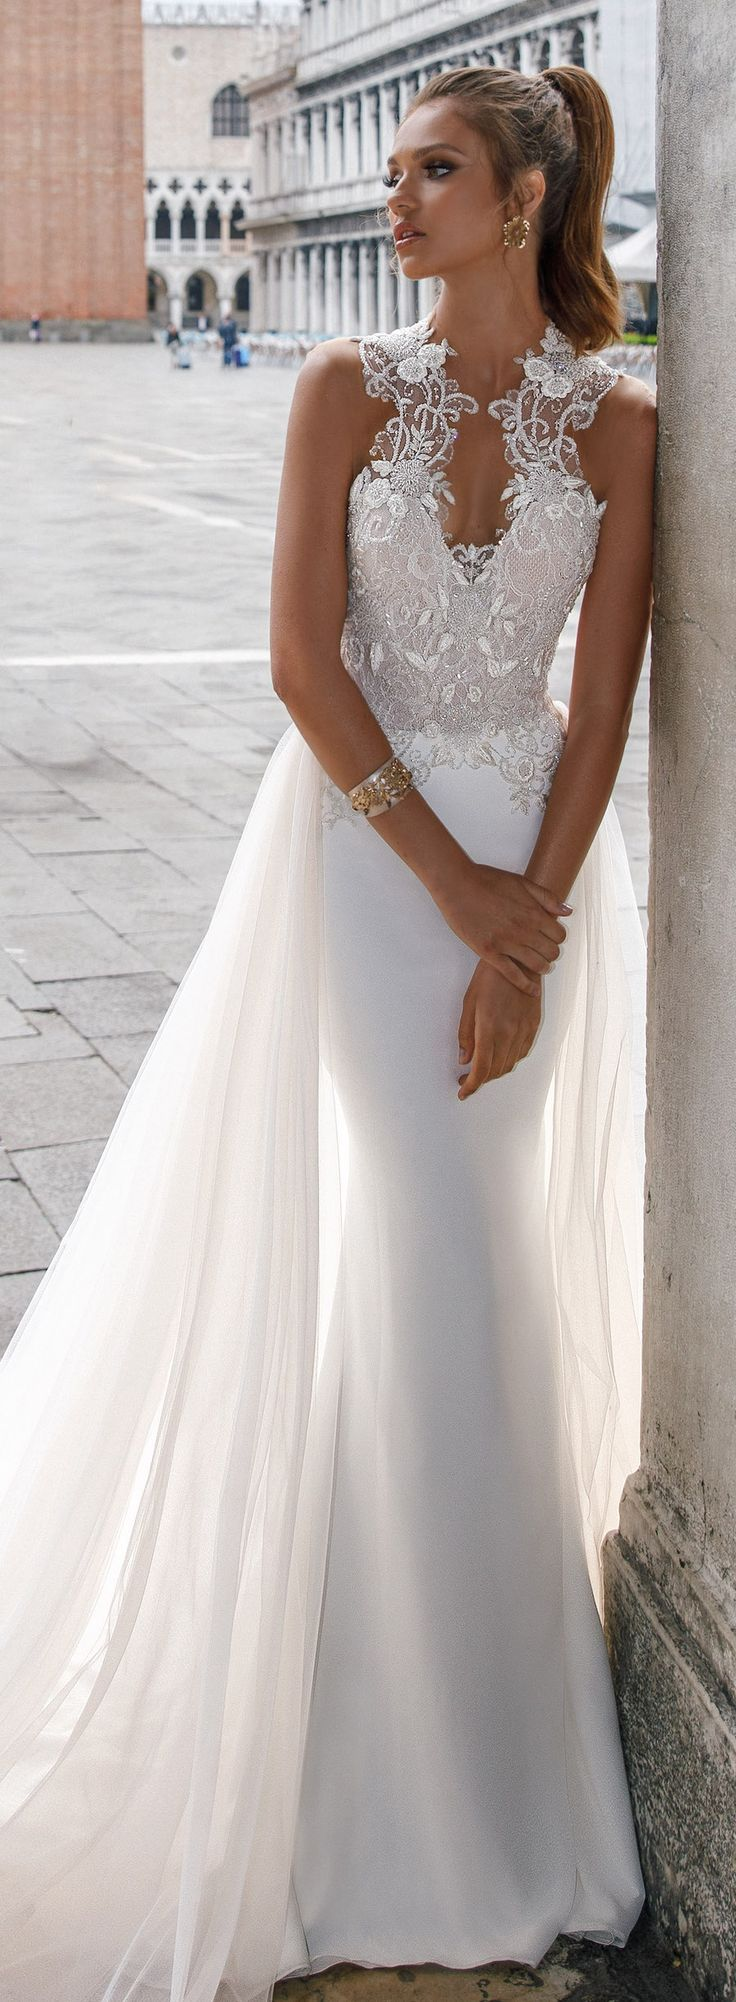 Julie Vino Spring 2018 Wedding Dresses -Venezia Bridal Collection